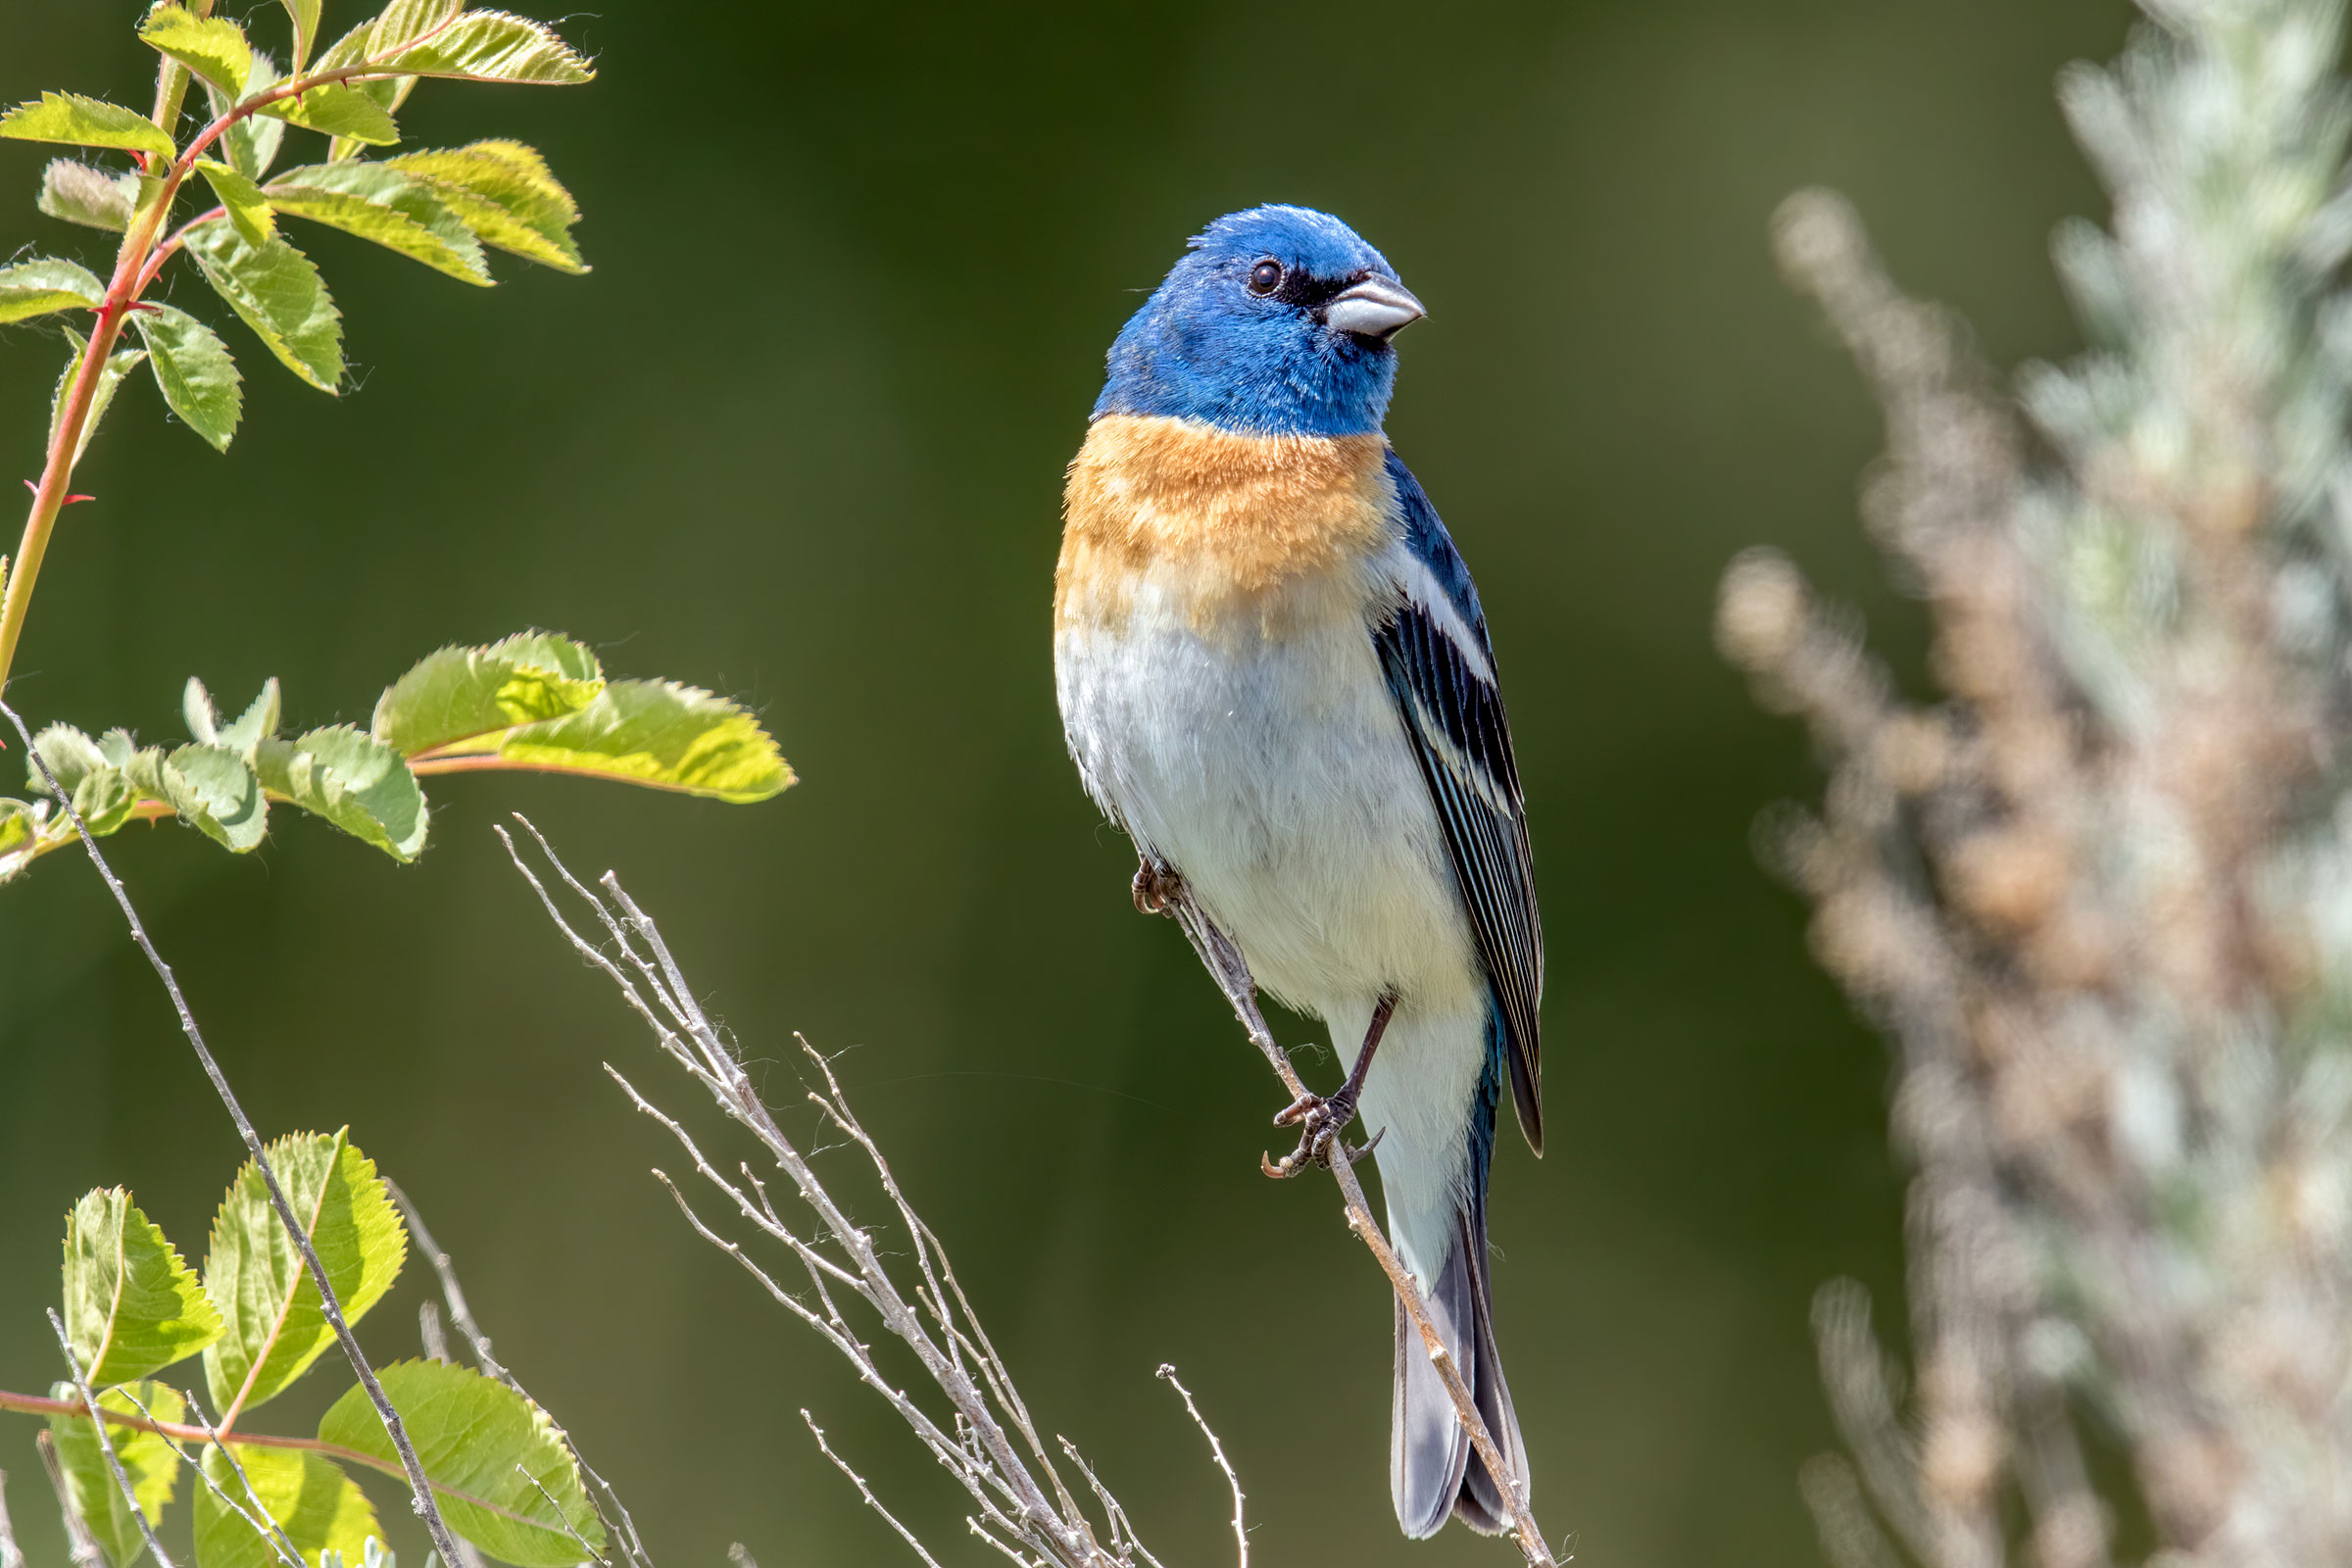 A Lazuli Bunting sits perched on a plant with a regal look on its face. The songbird has a bright blue head with a rusty chest and white belly. Mick Thompson